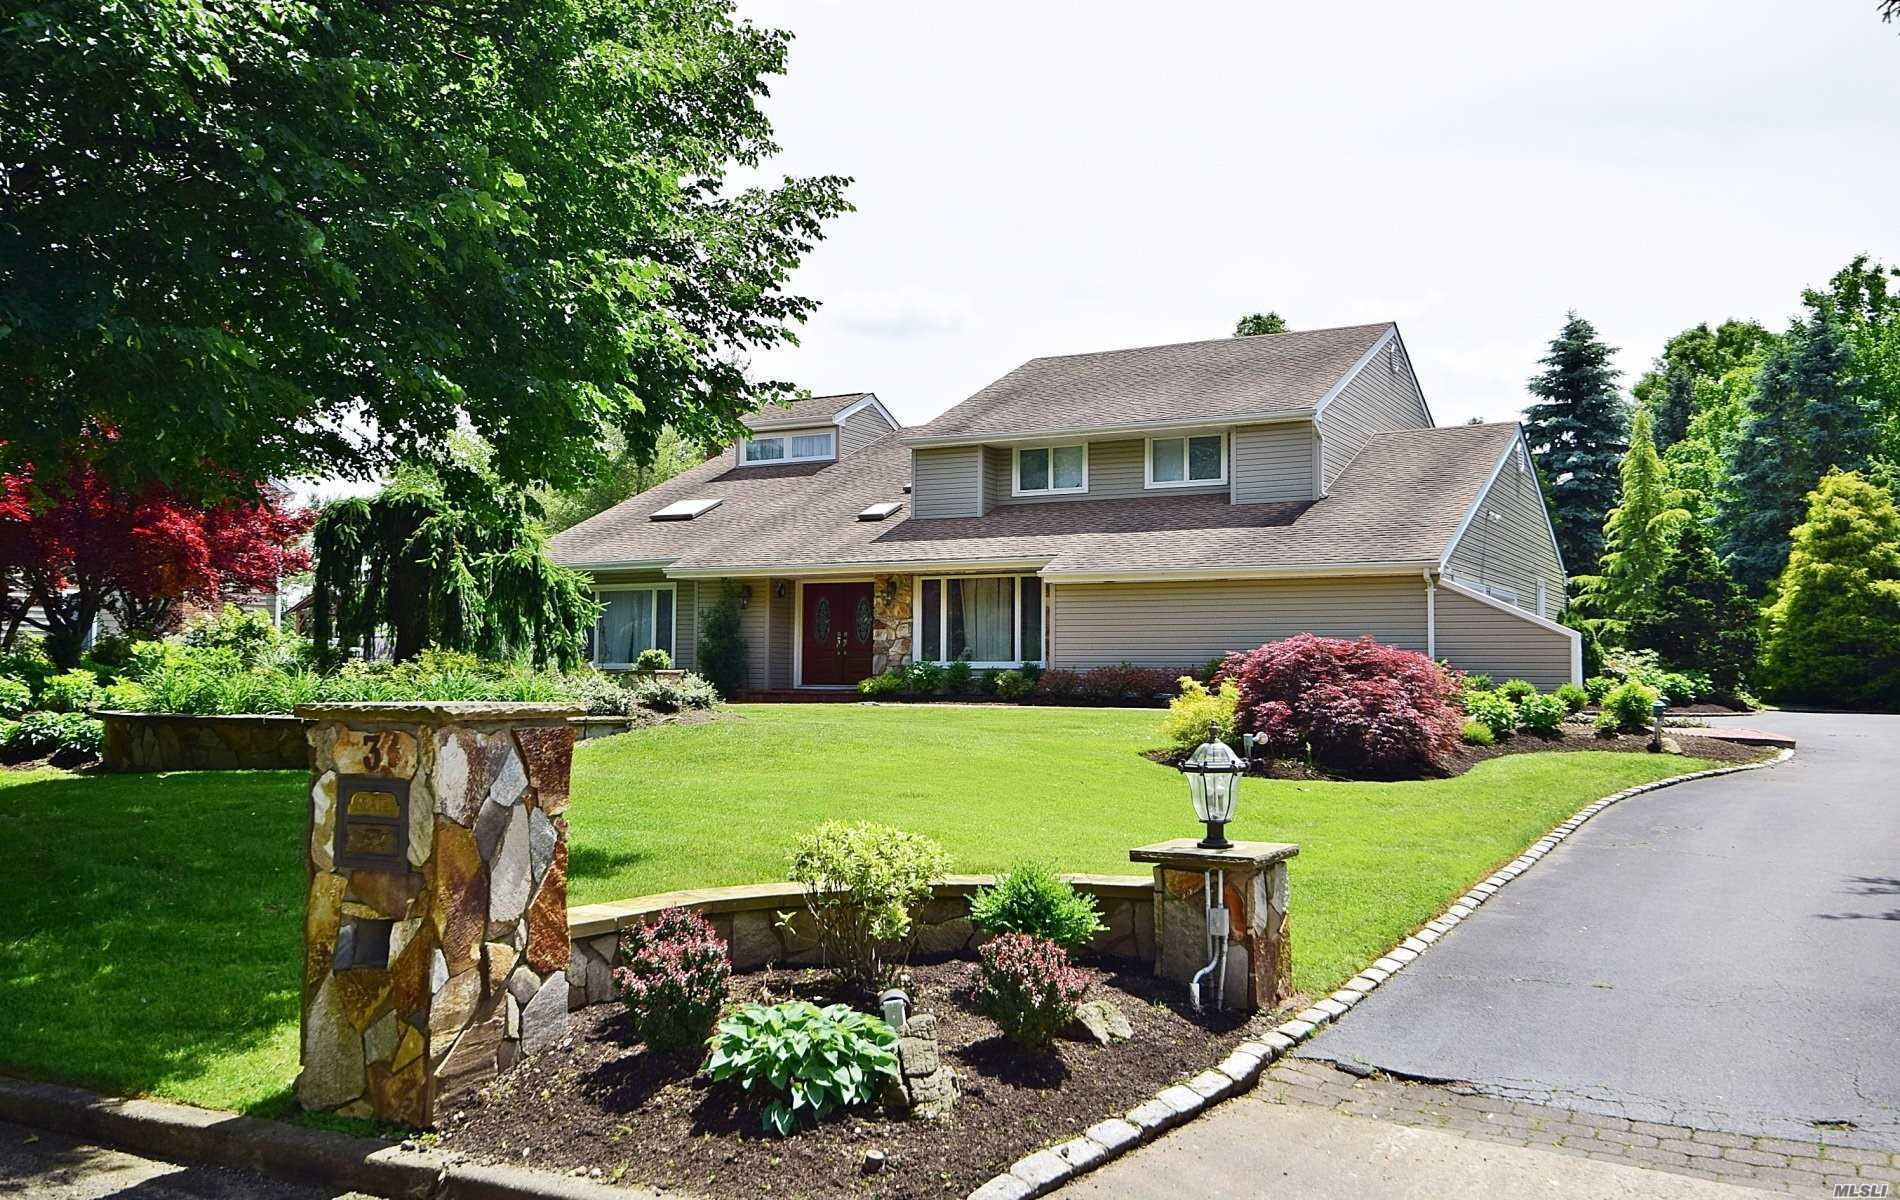 Photo of home for sale at 3 Cabriolet Ln, Melville NY